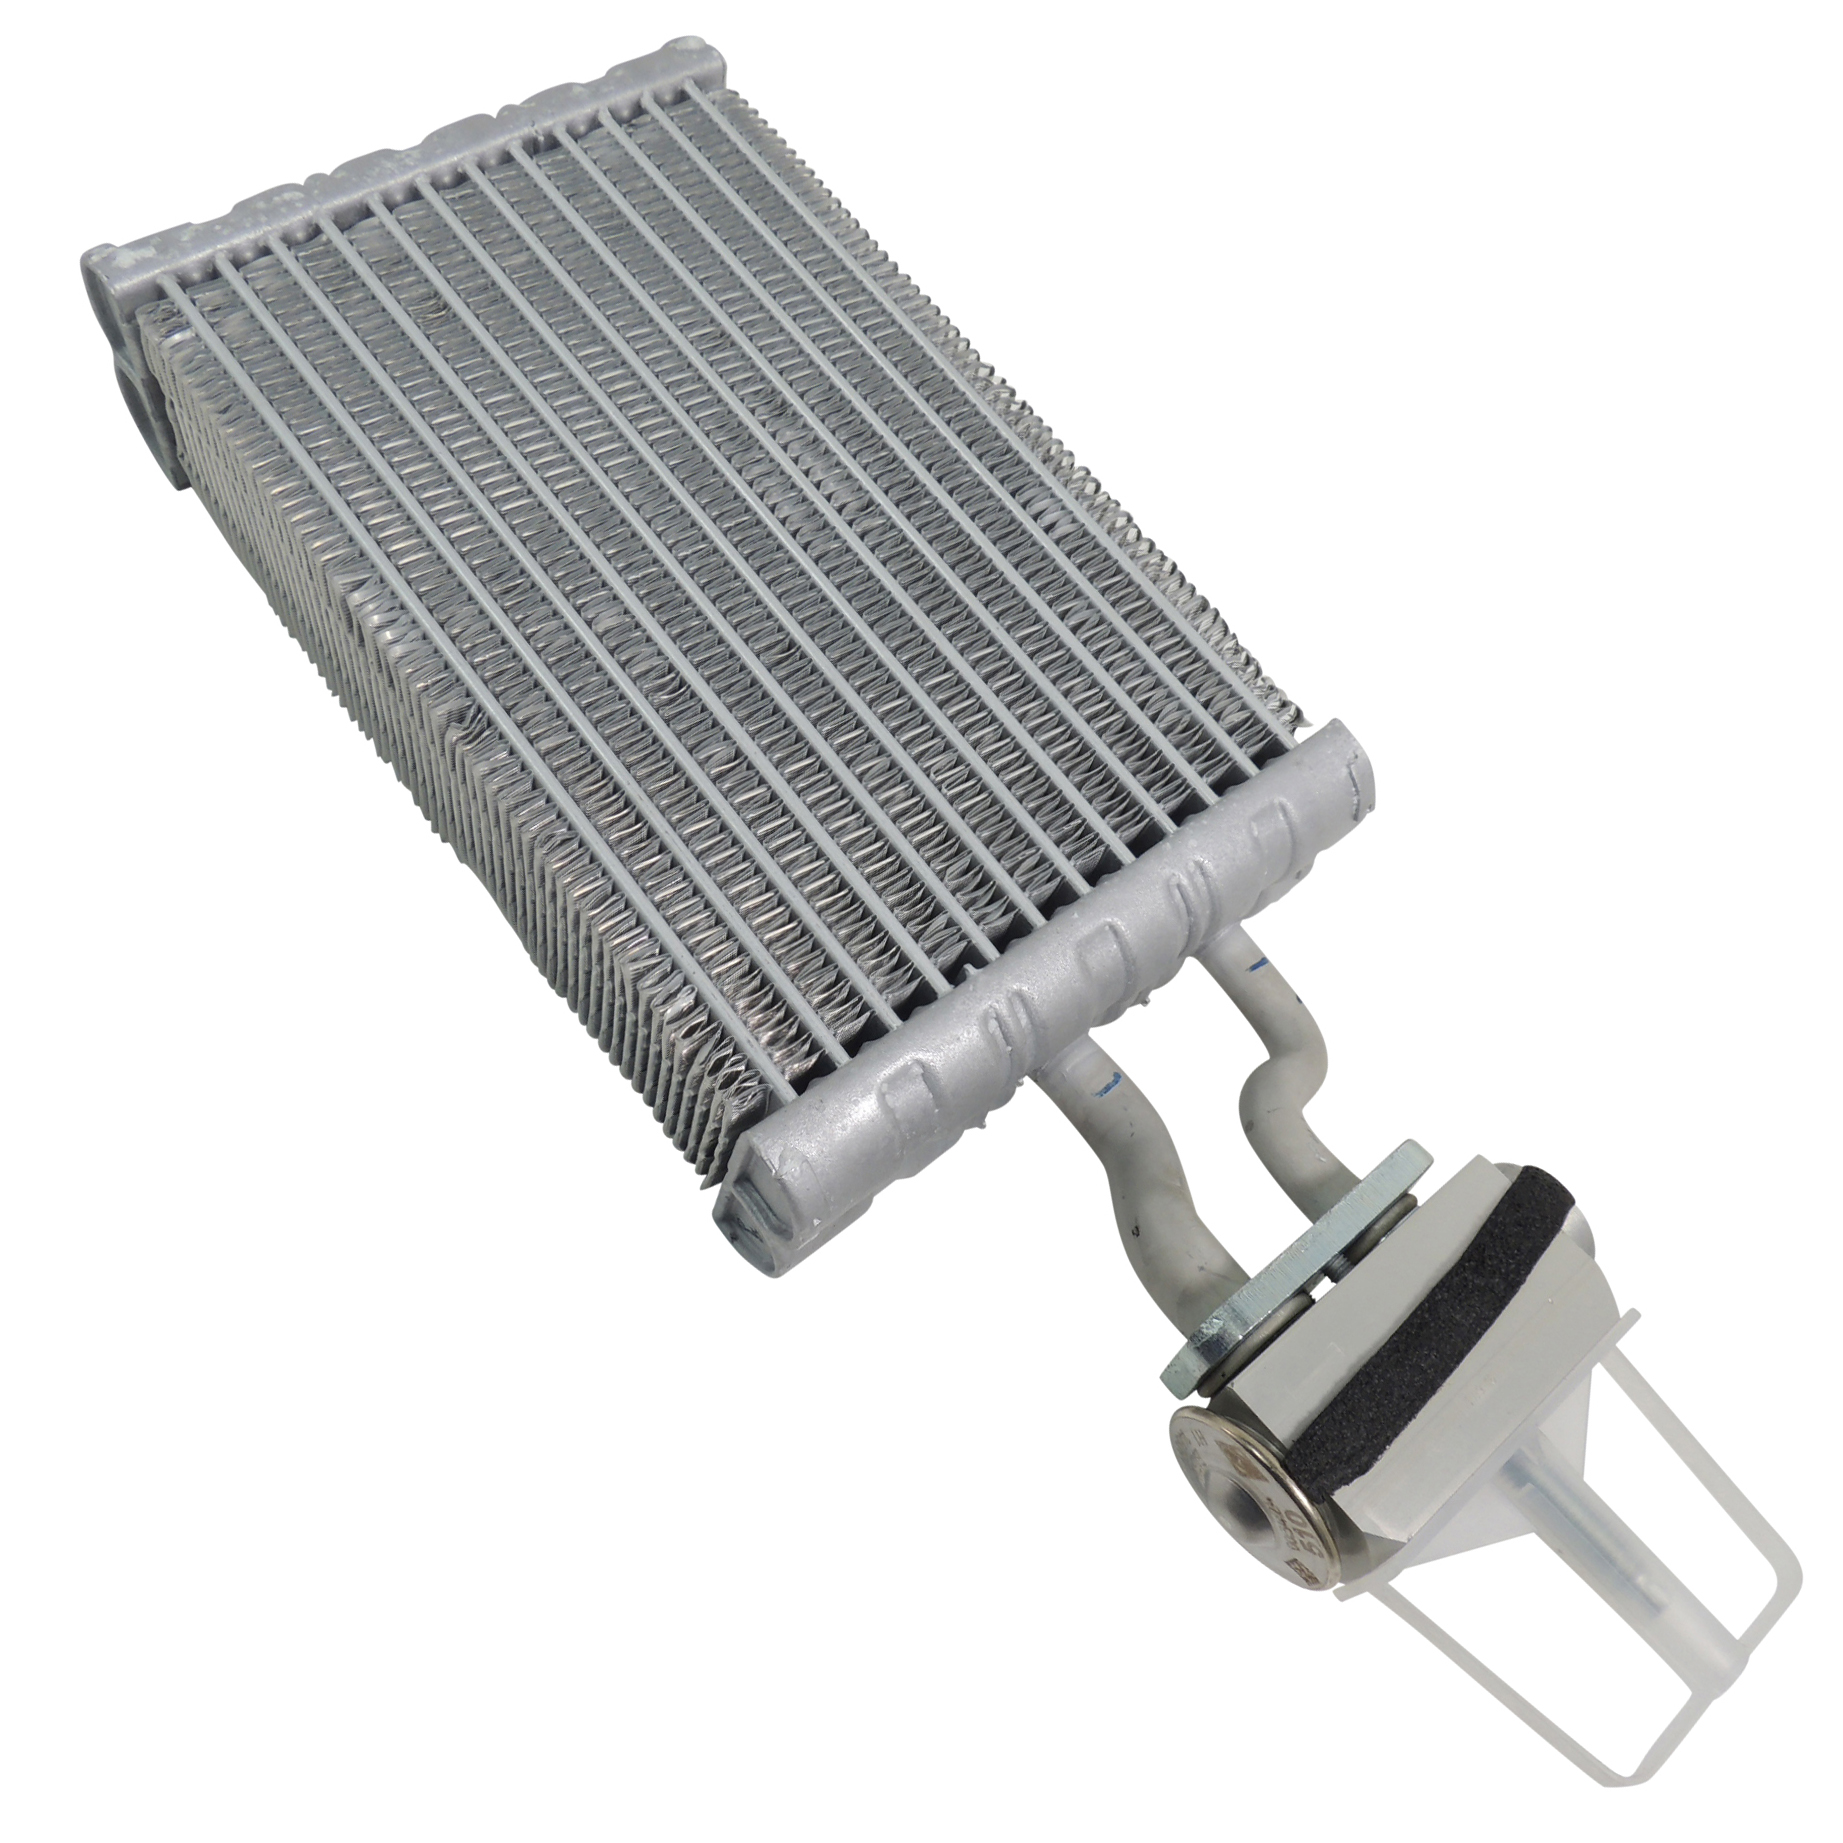 Details about ACDelco 15-63489 GM Original Equipment Rear Air Conditioning  Evaporator Core